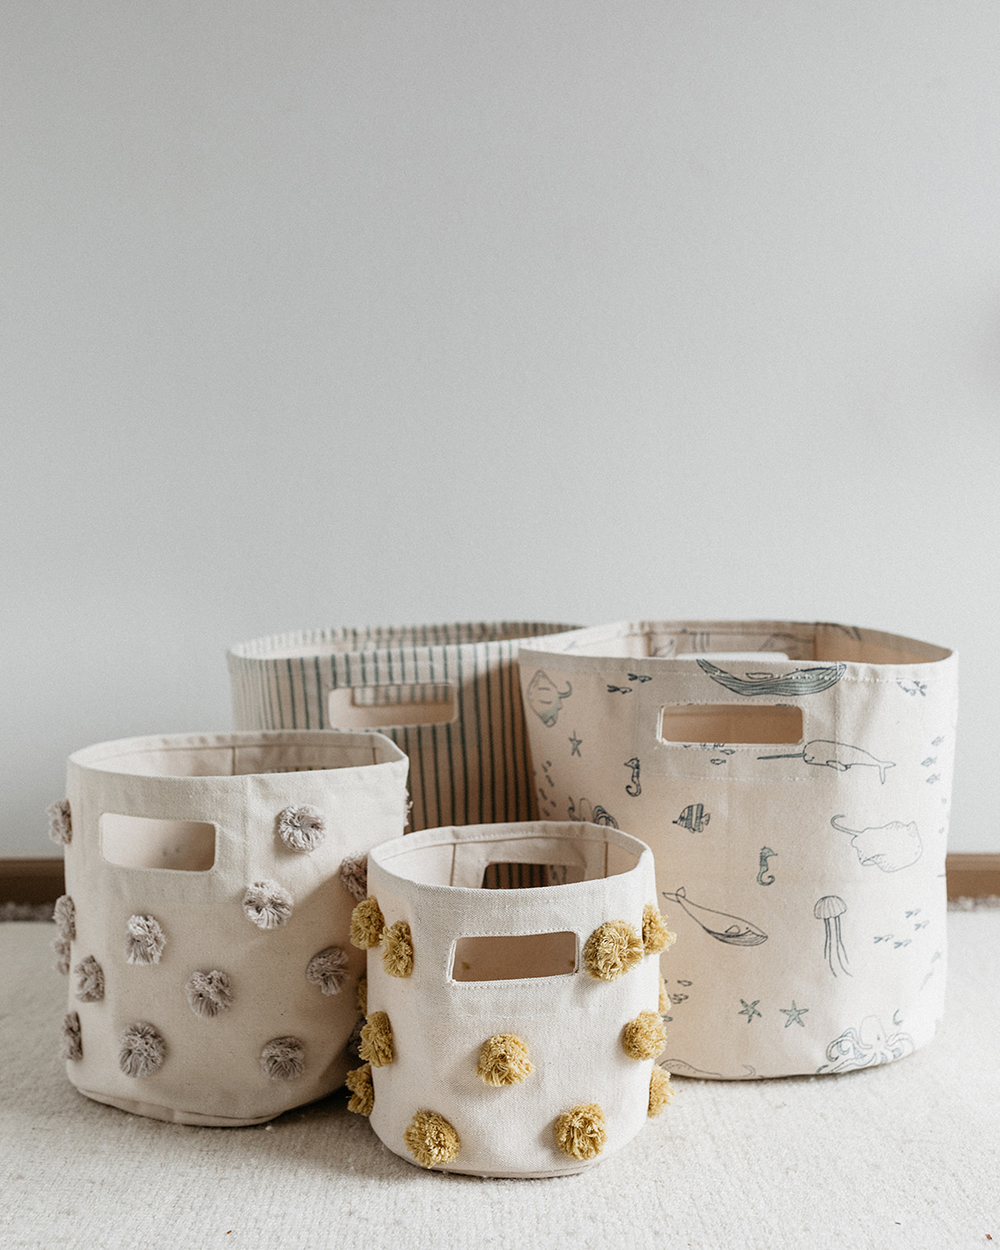 A grouping of baskets from Pehr